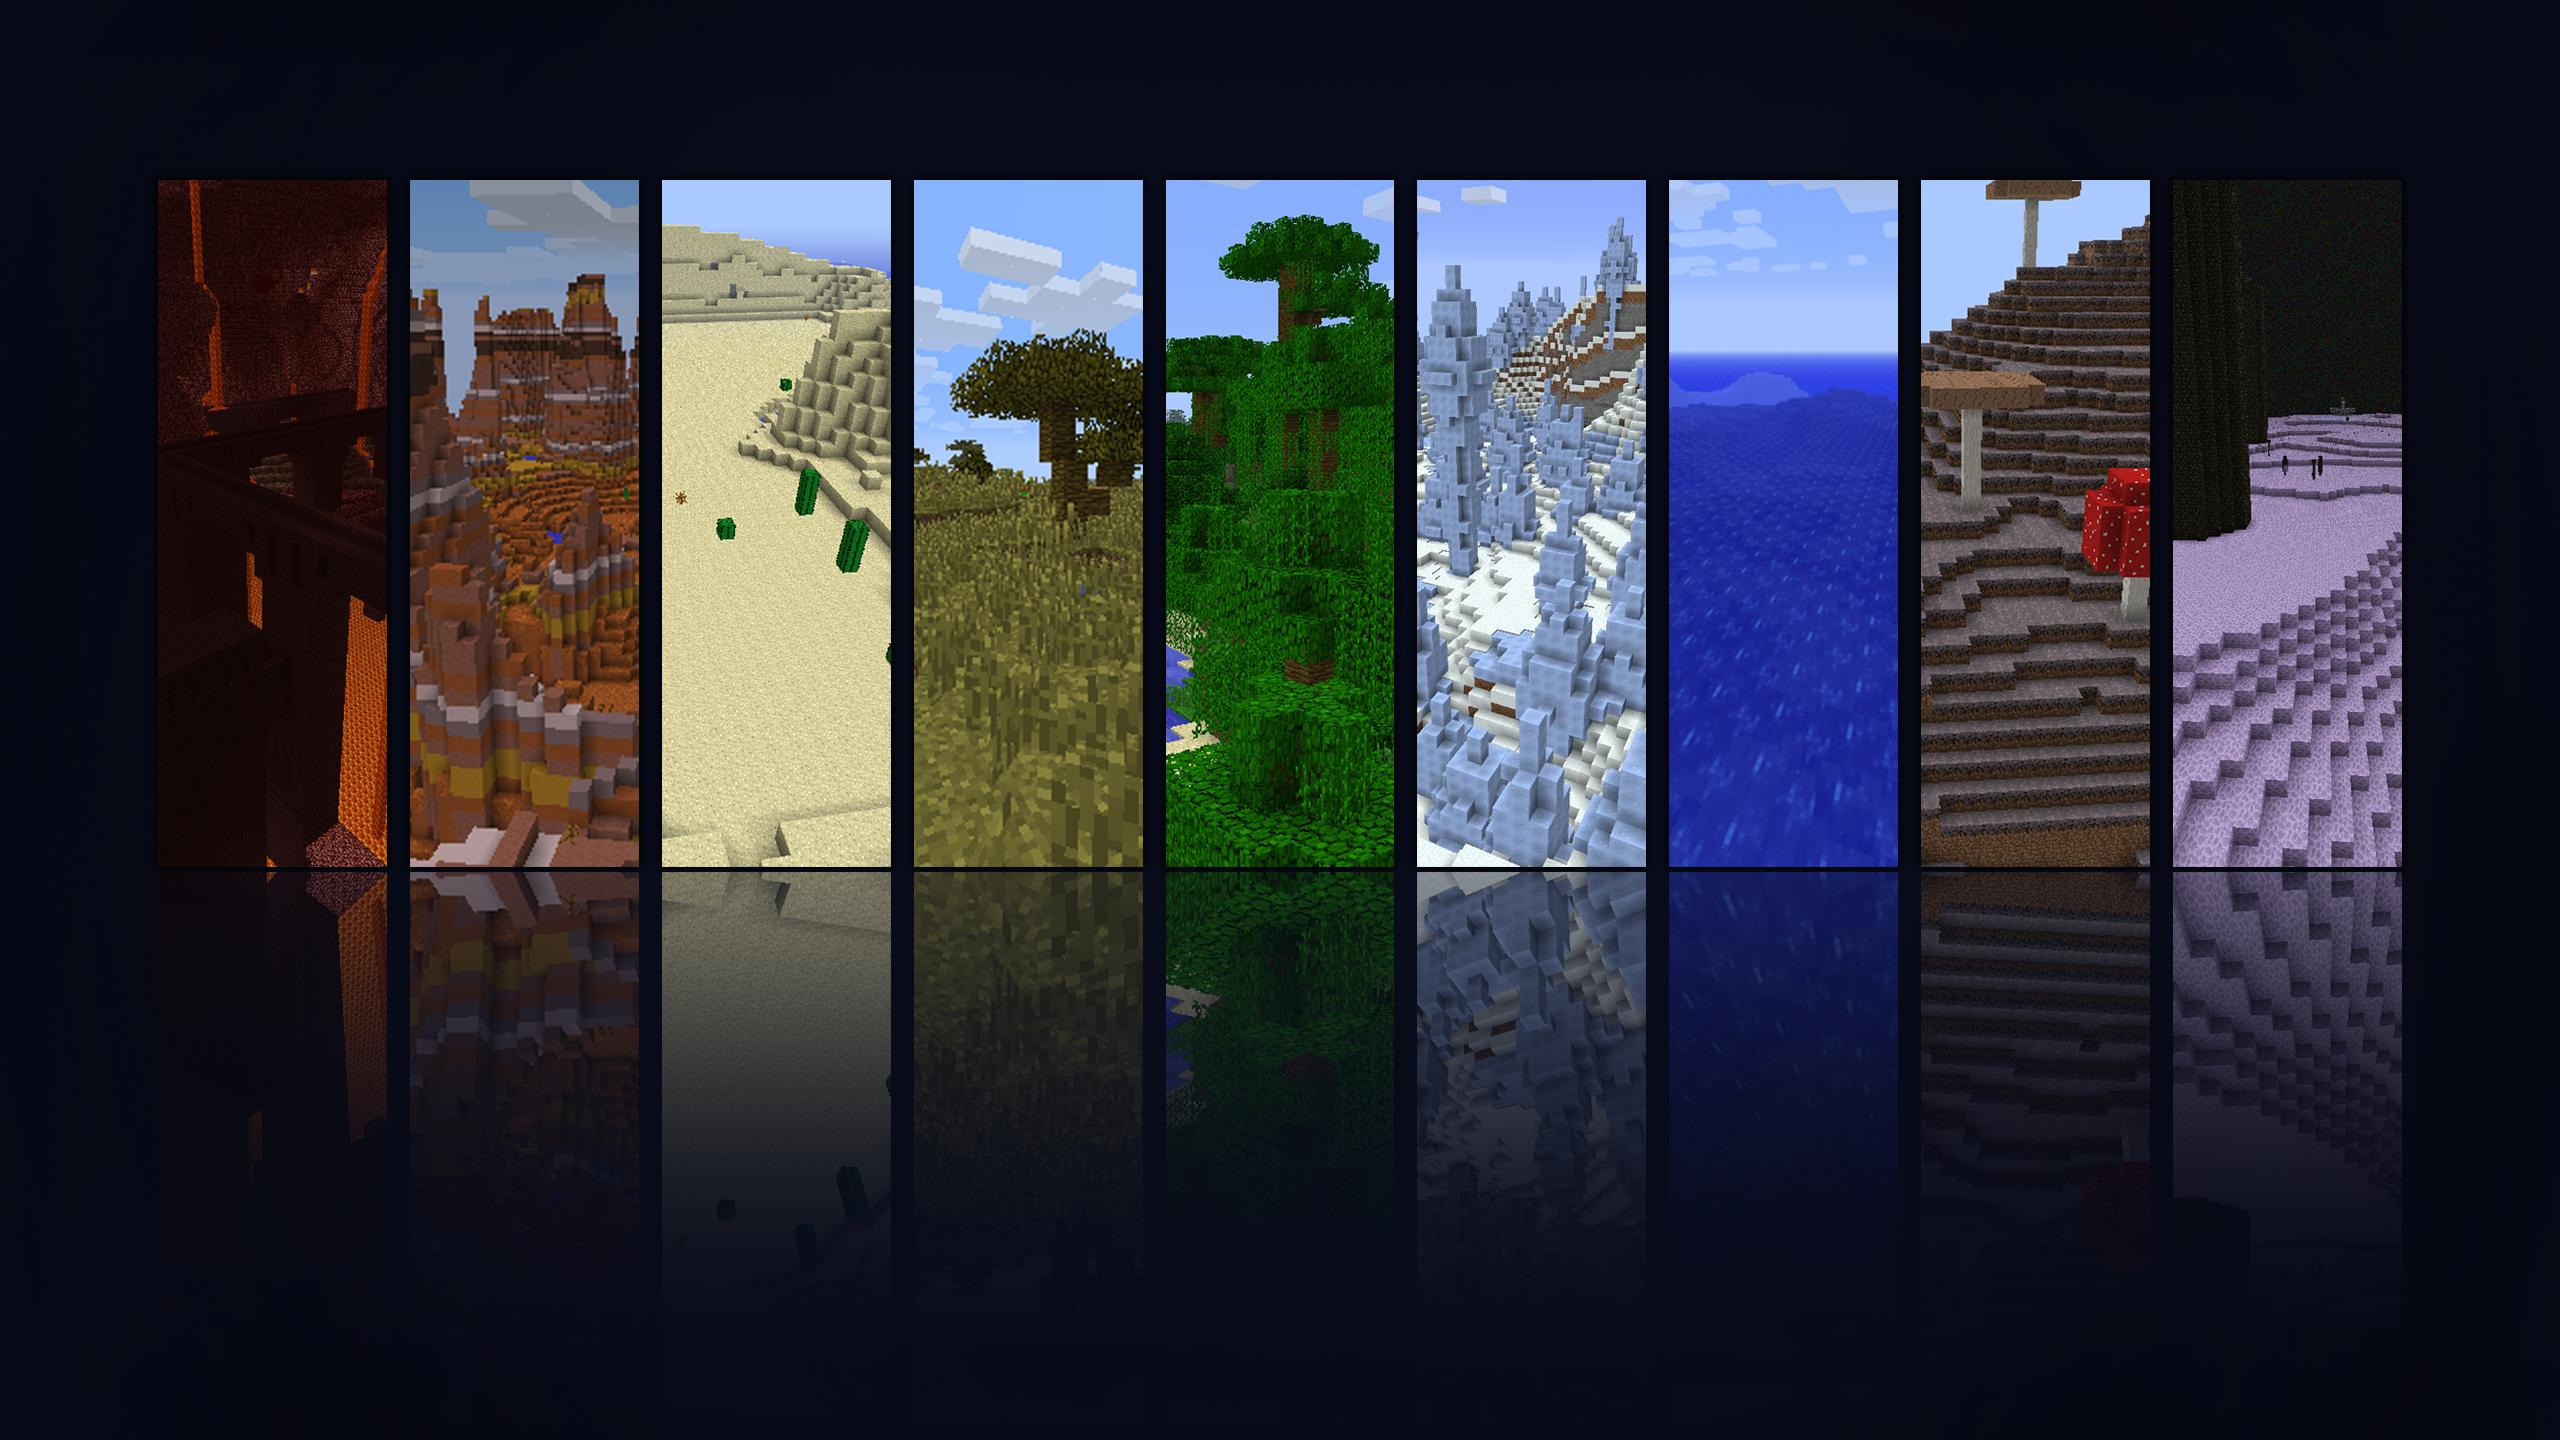 Nova Skin Minecraft Wallpaper Generator with custom skins